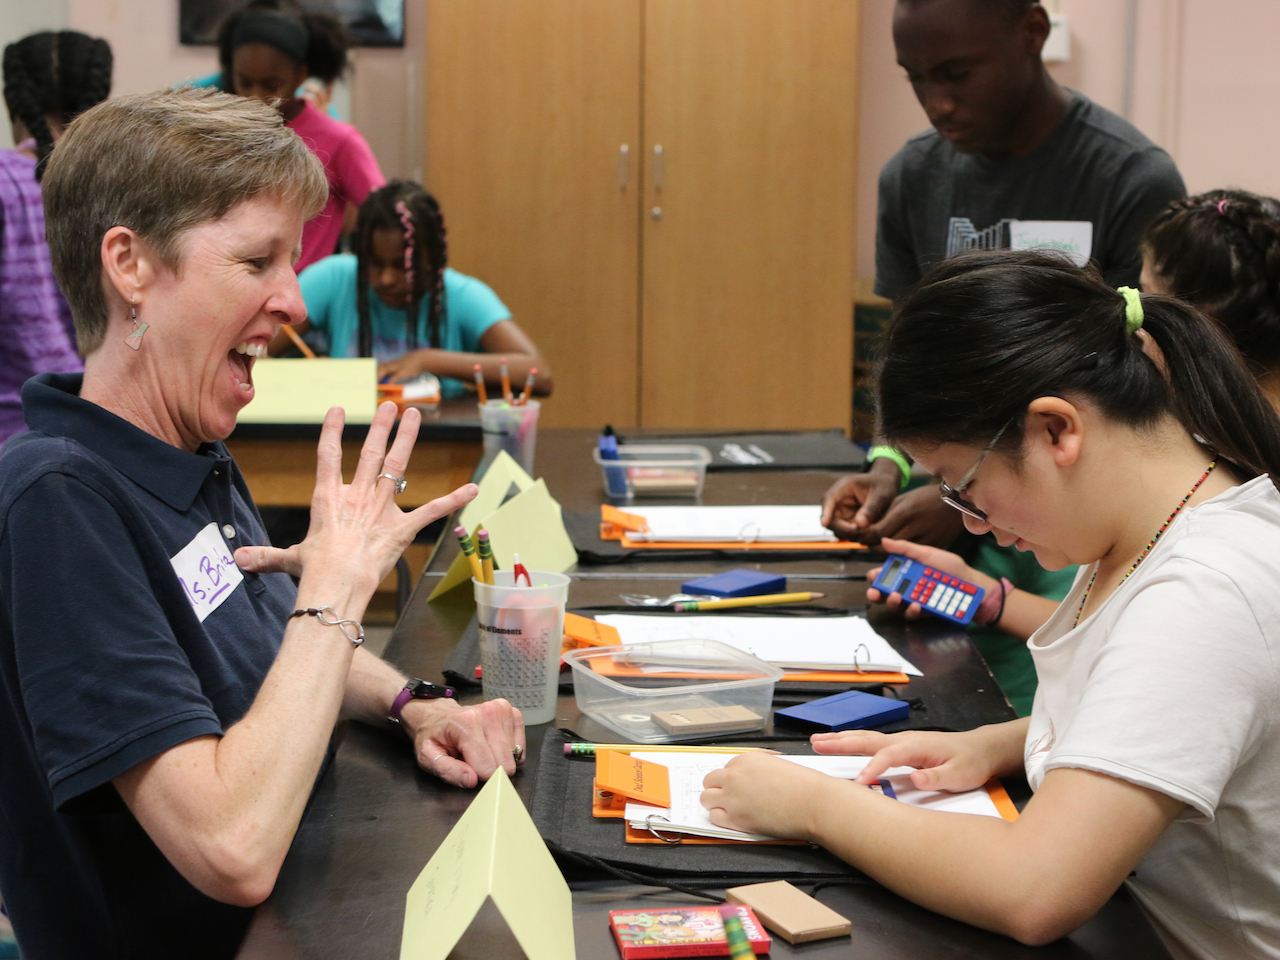 Deaf Science Camp Founder Brita Hampton works with a student at the 2019 Deaf Science Camp